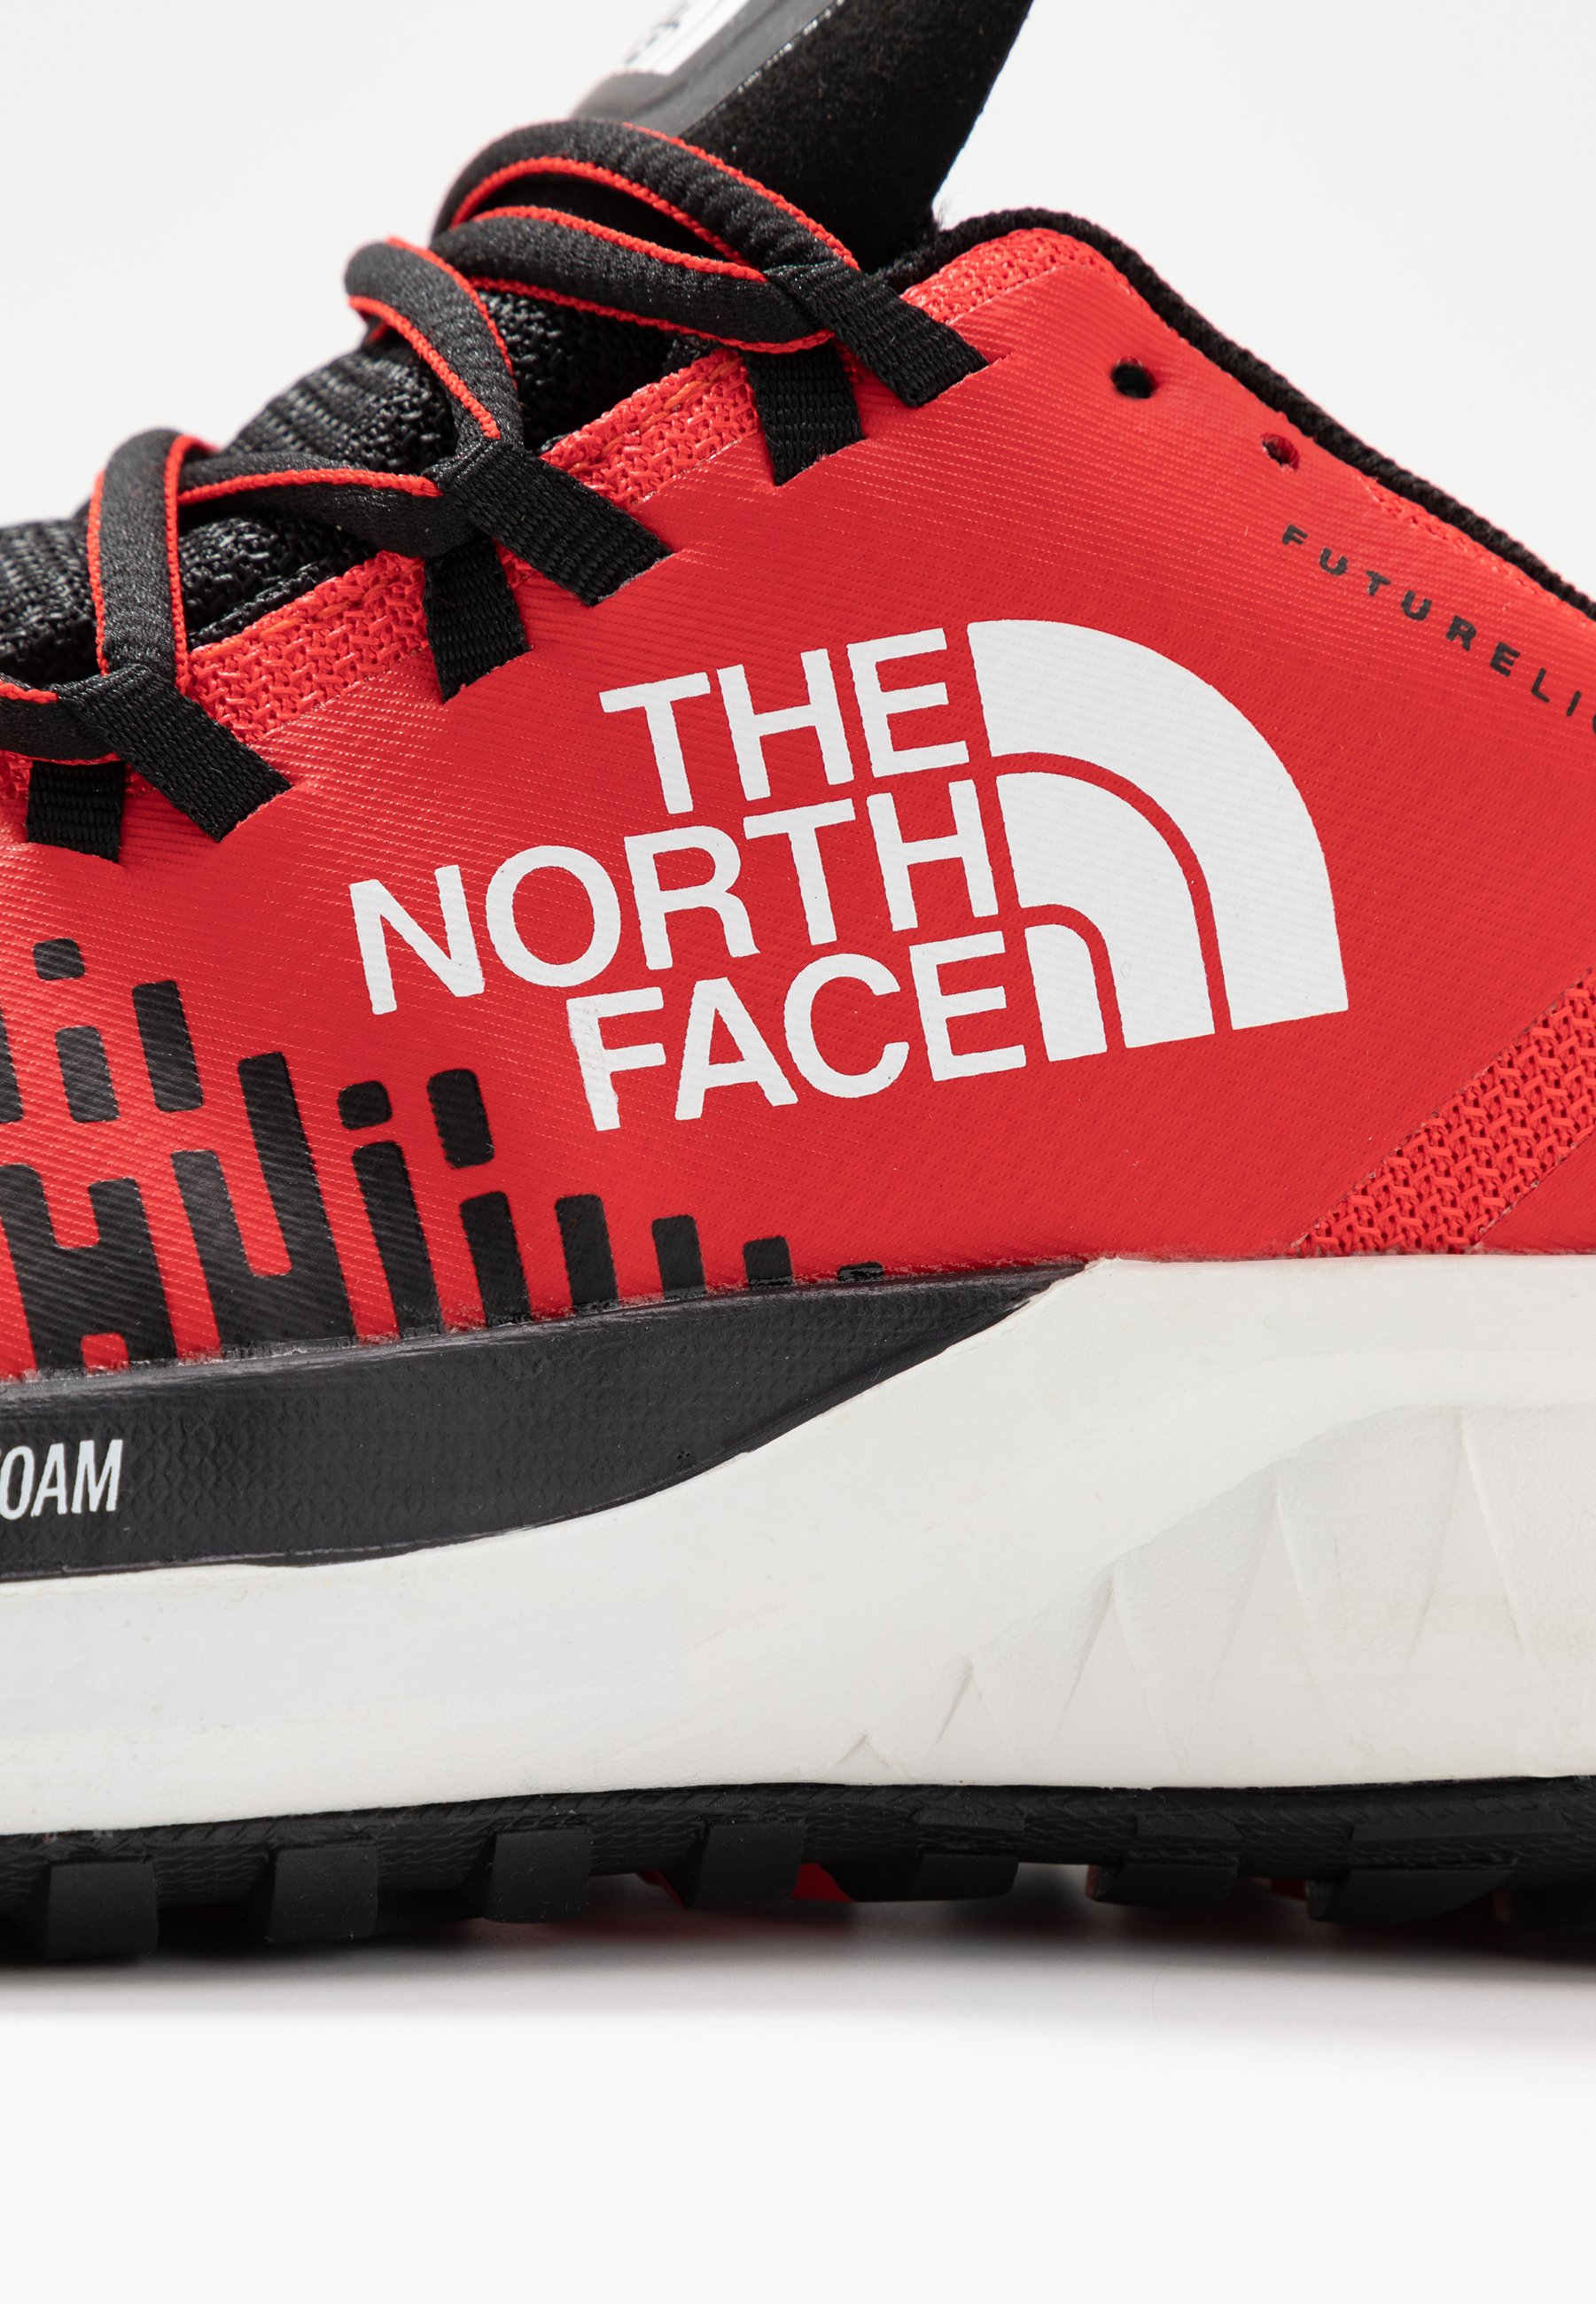 The North Face Løpesko for mark fiery redthe north face